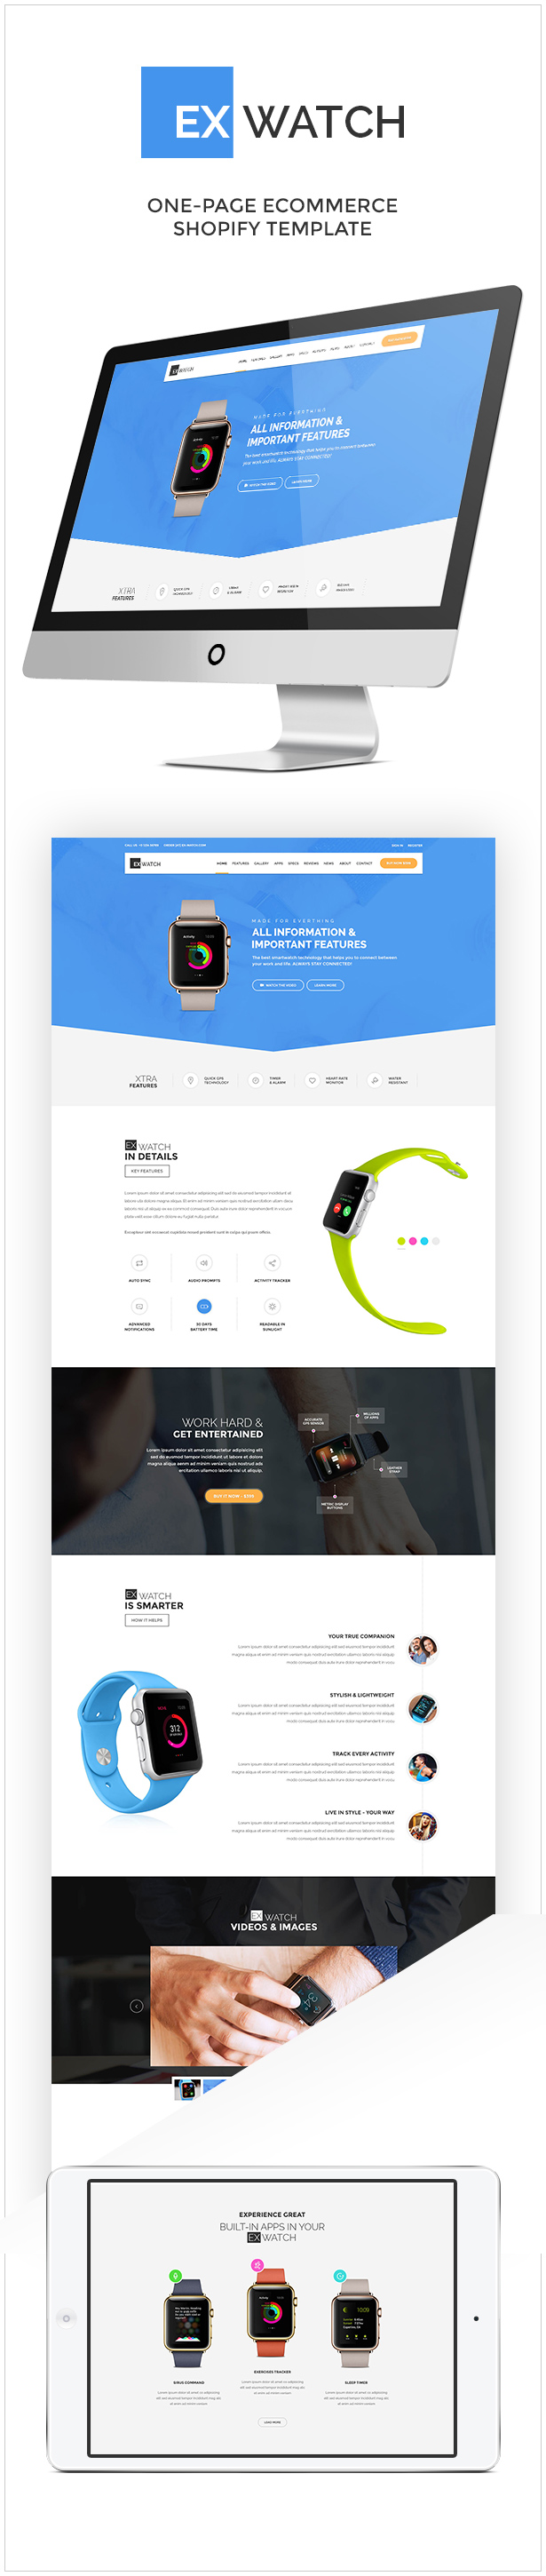 Ex Watch Single Product ECommerce Shopify Theme Pinterest - Single product ecommerce template